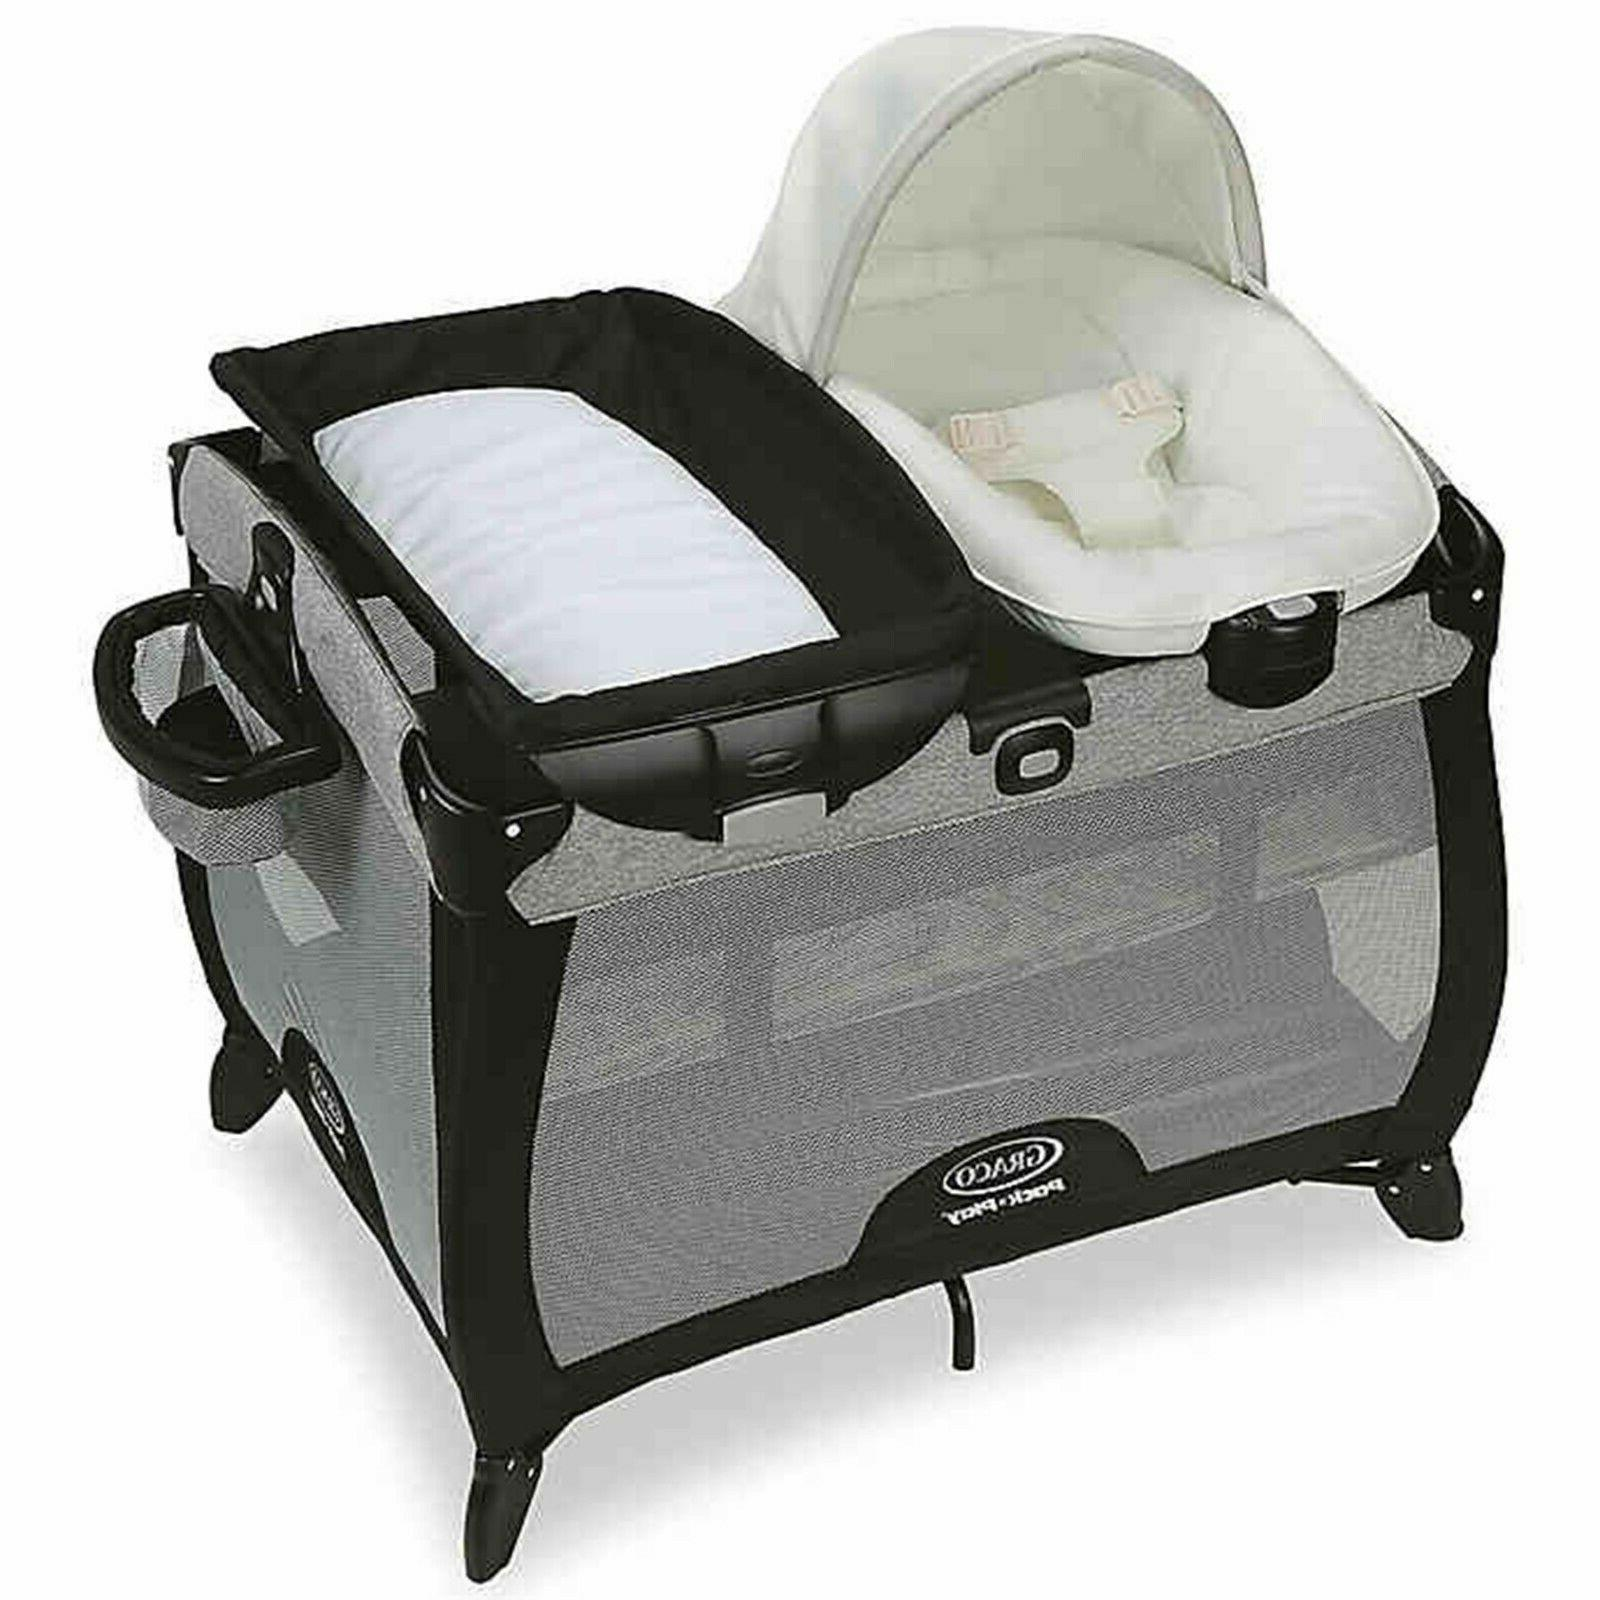 Graco Baby Stroller Travel System with Seat Playard New